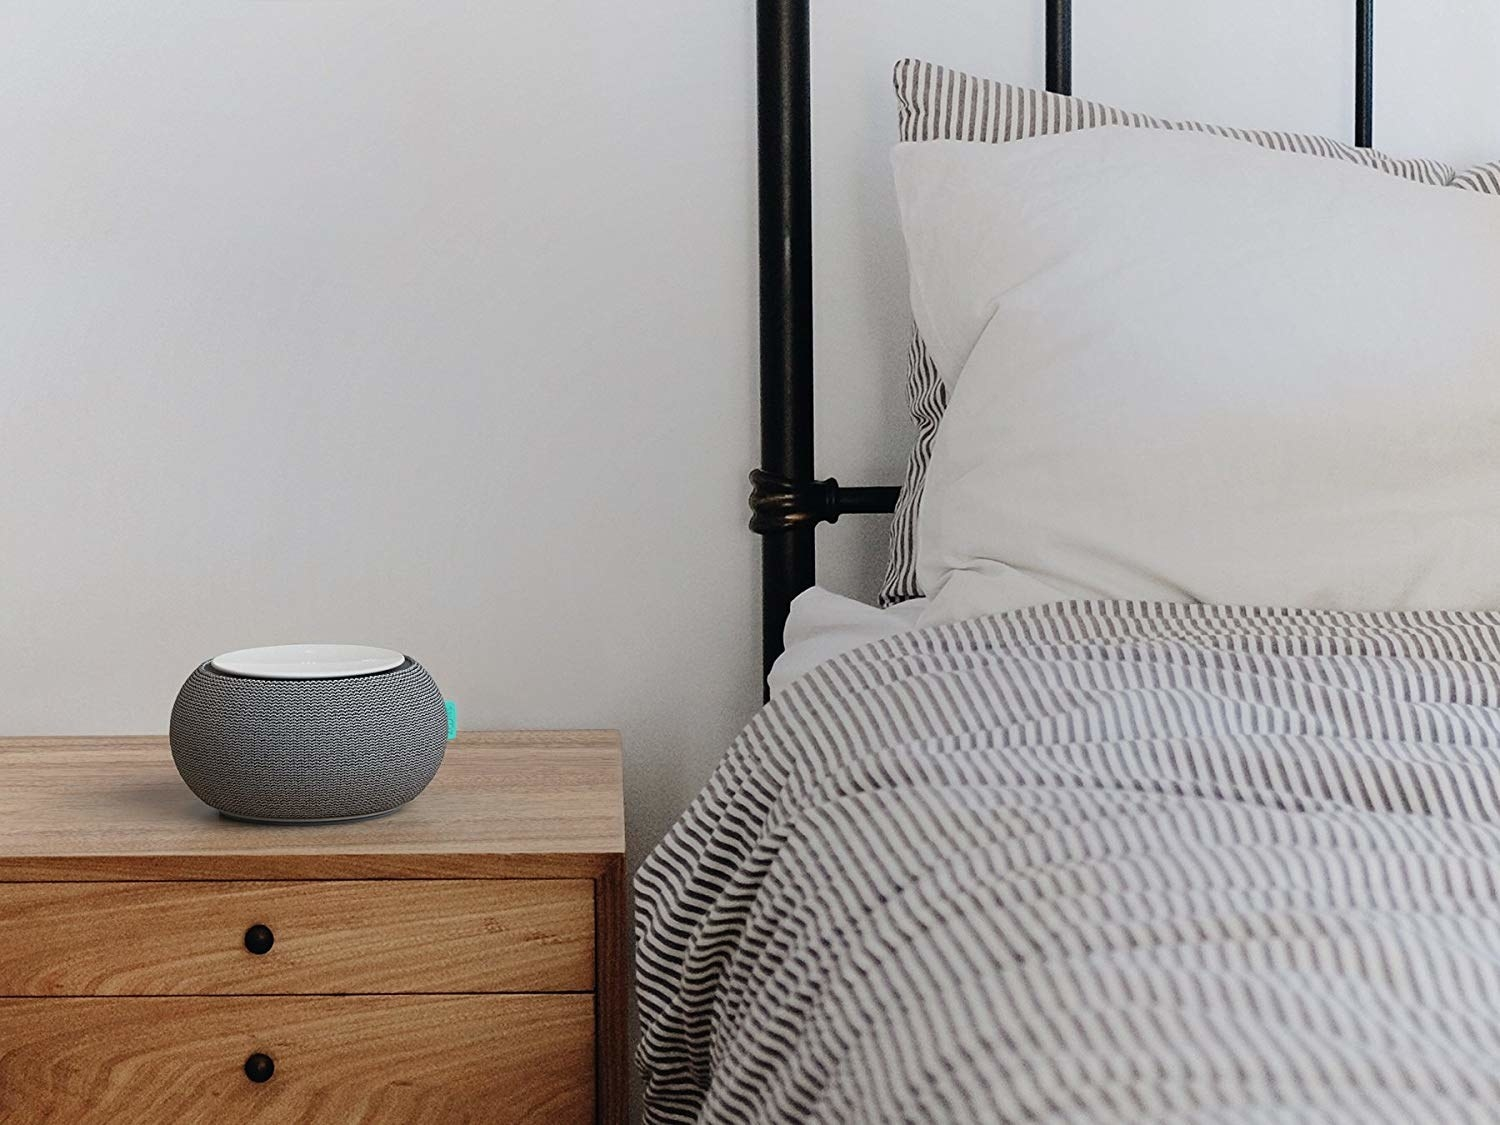 Small round device next to bed